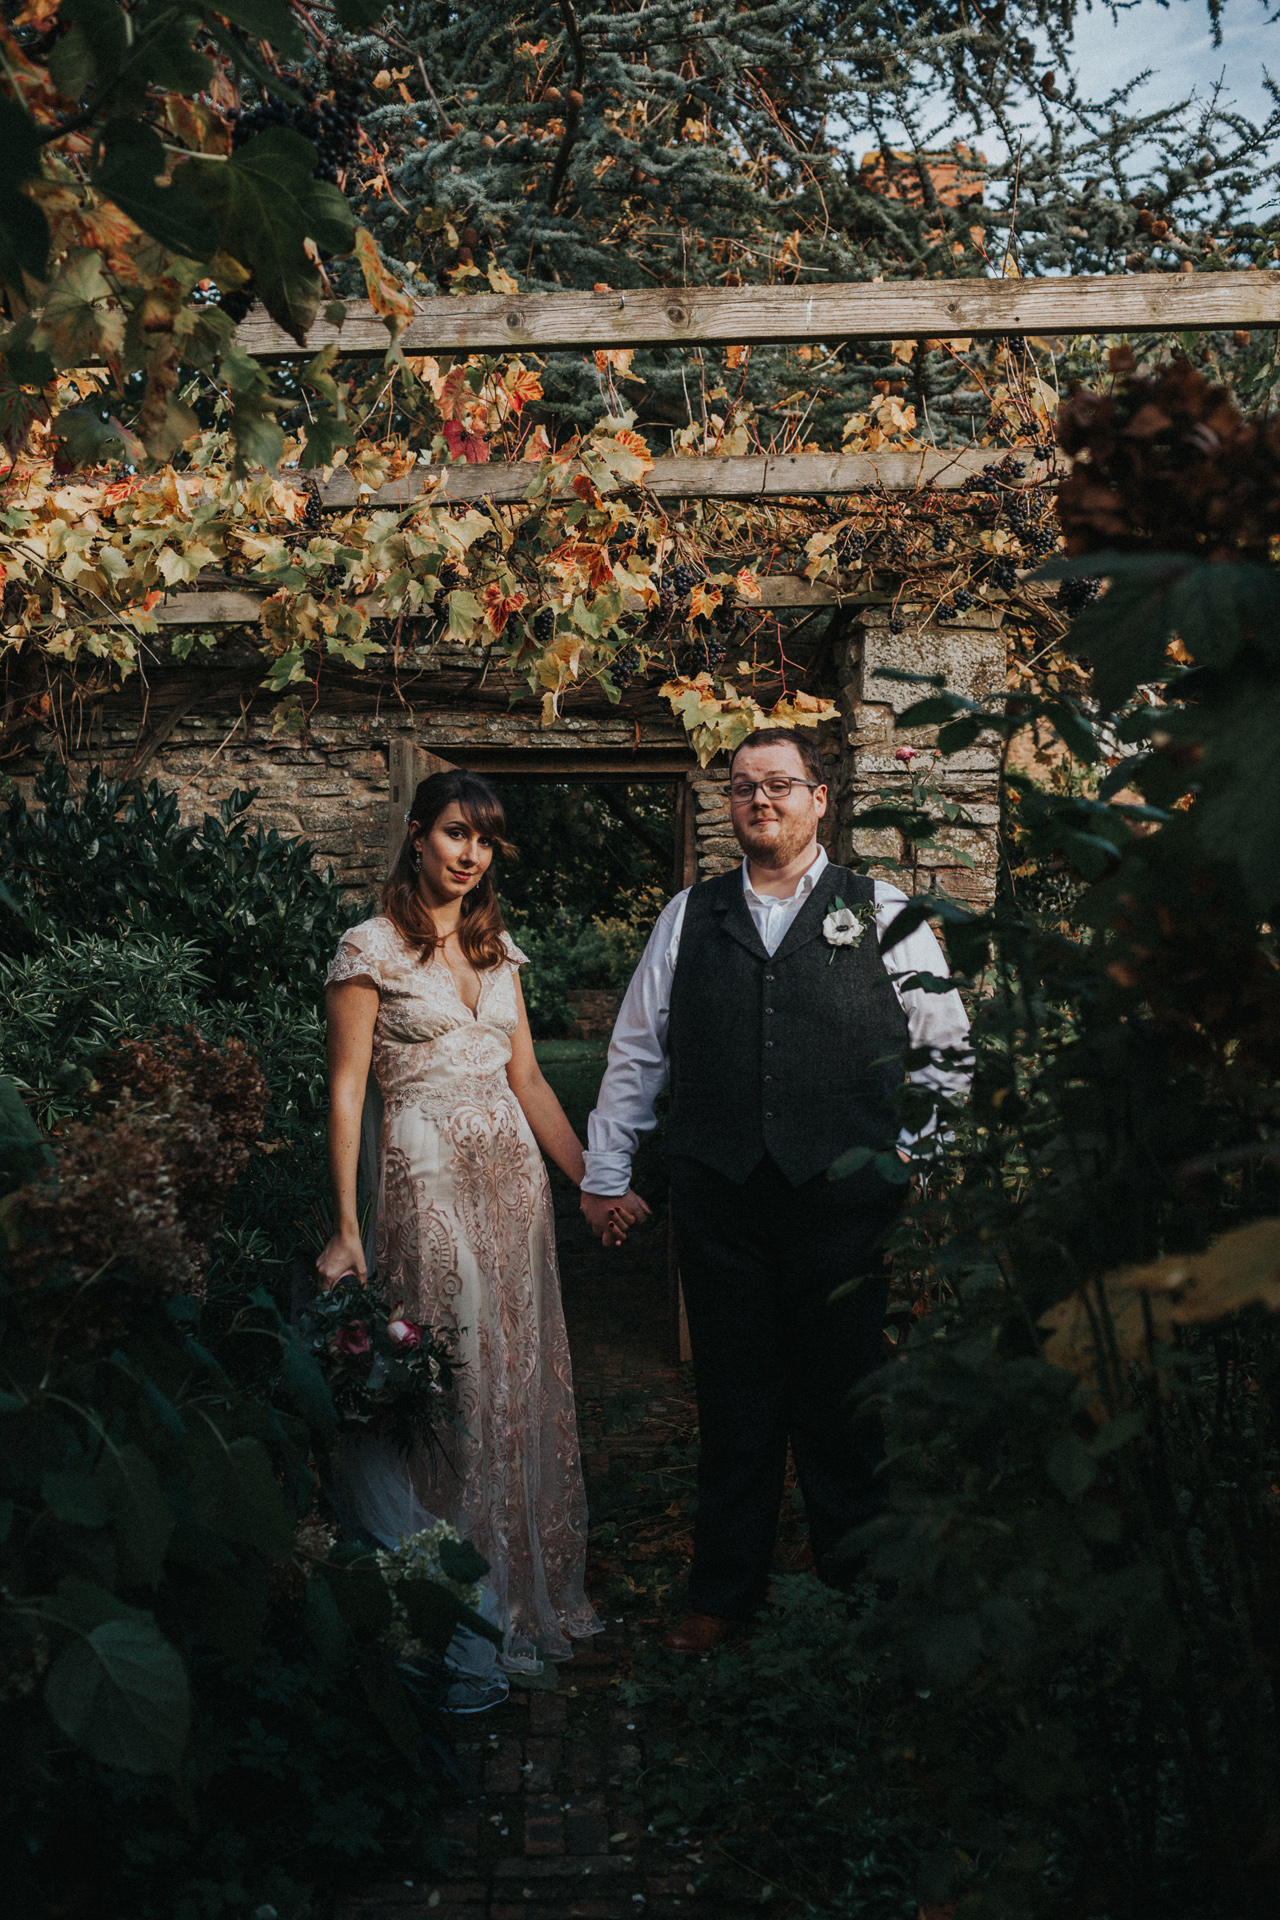 Photograph of Bride and Groom in the grounds of Dewsall Court.